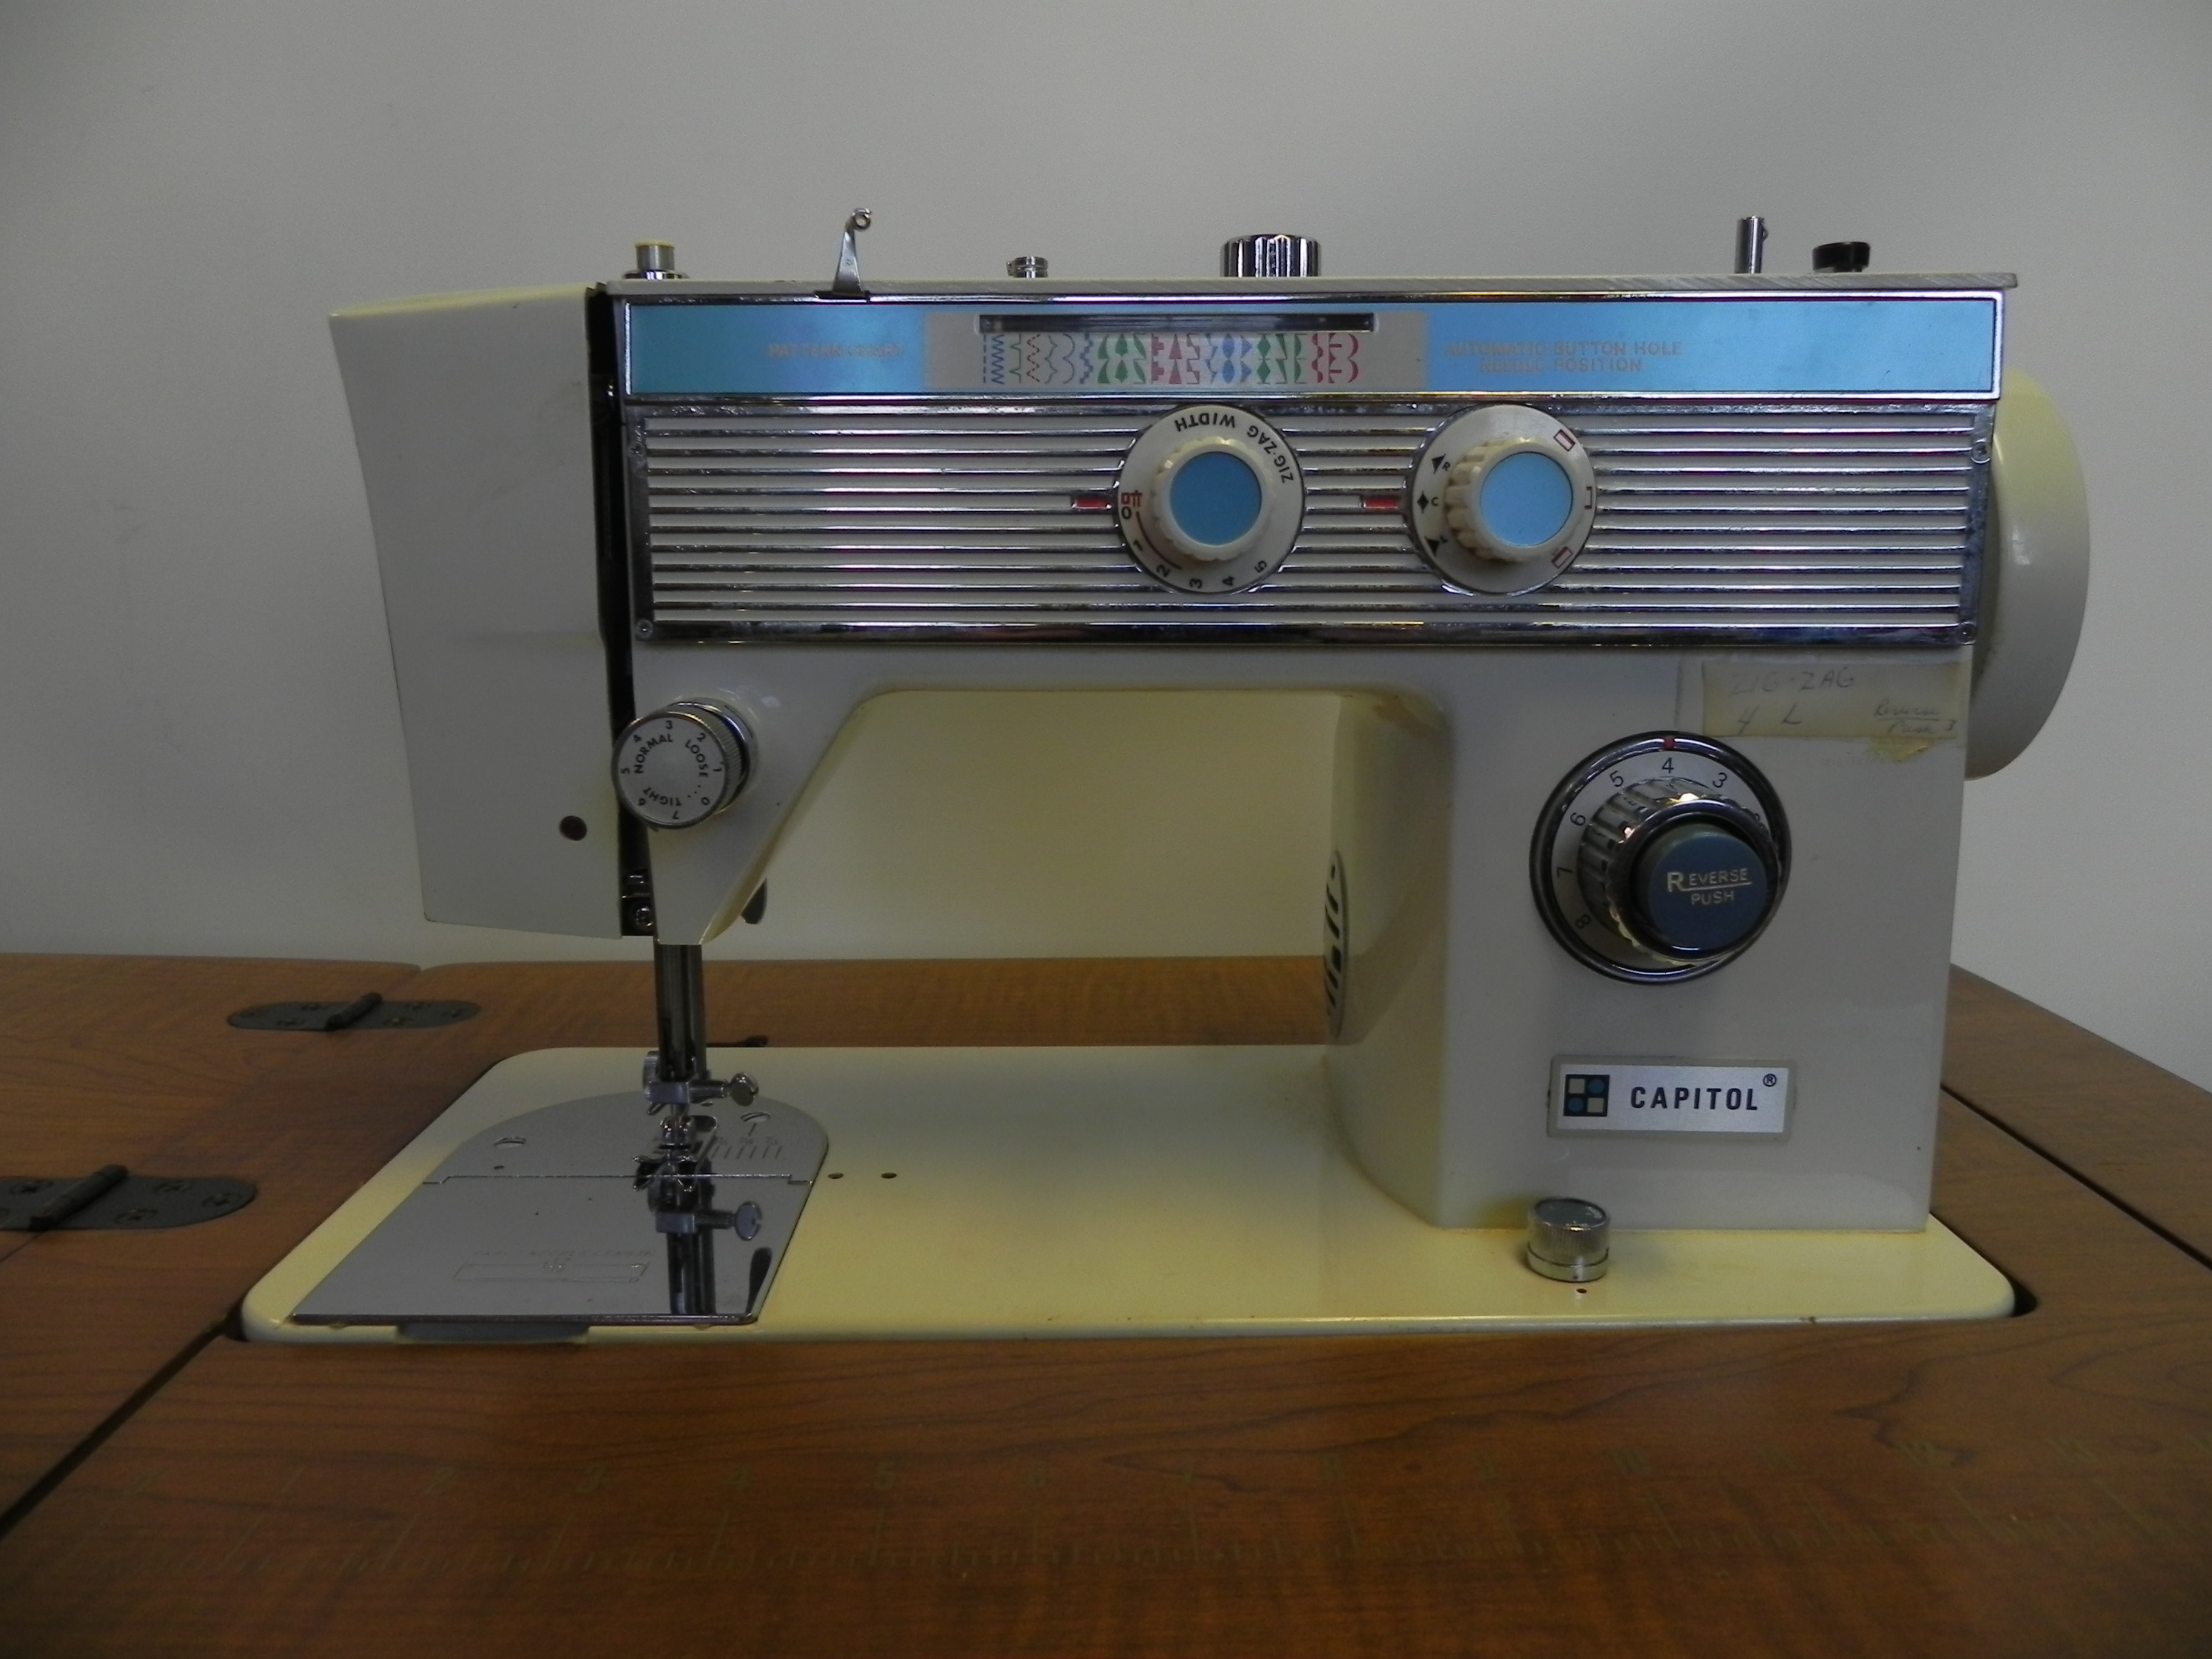 Sewing Machine Capitol Model 5900